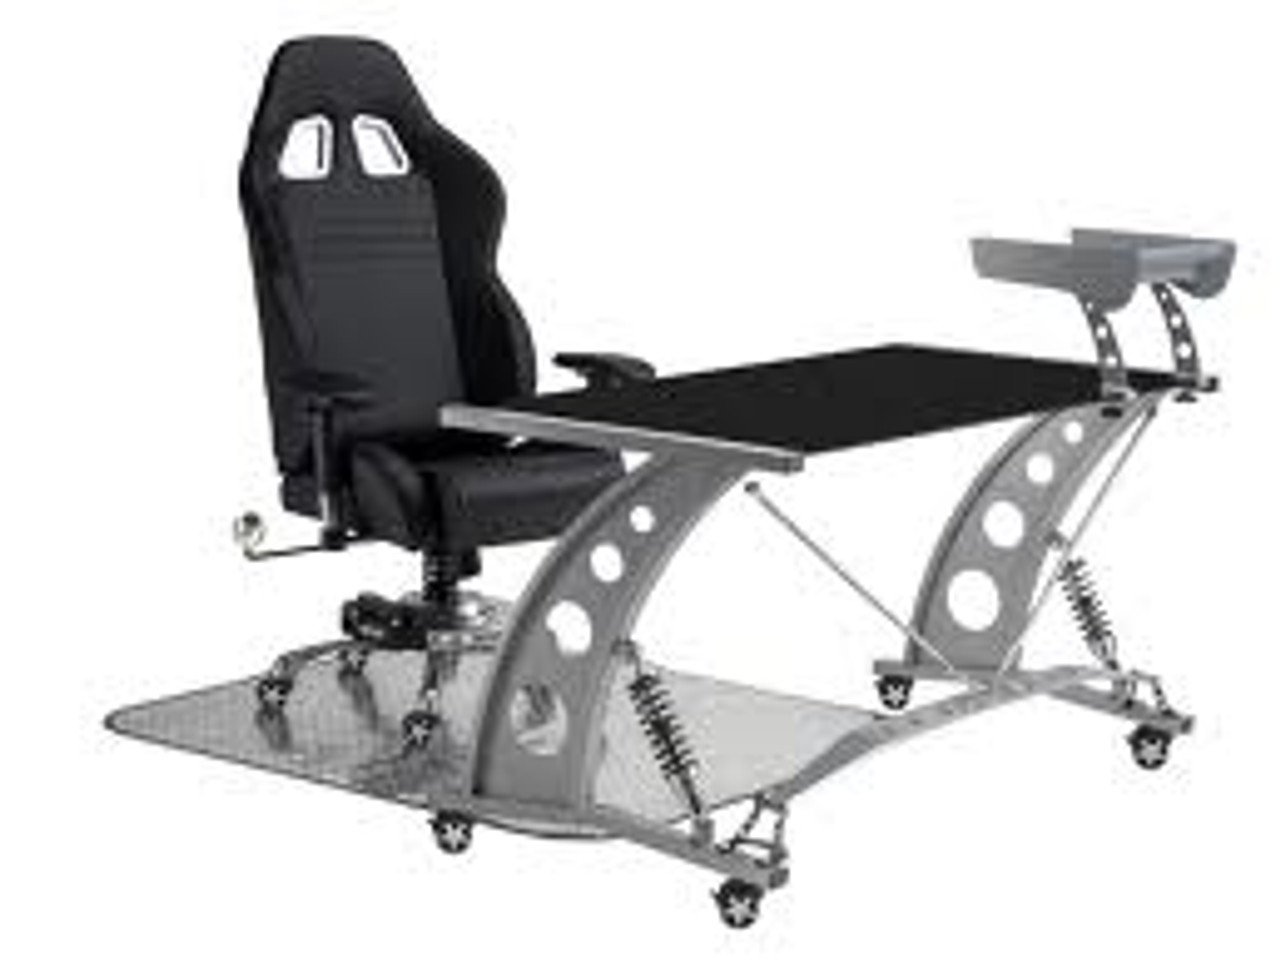 PitStop Furniture - Formula One Black Desk Set - Shown here with the Black on Black F1 Chair (includes floor mat)